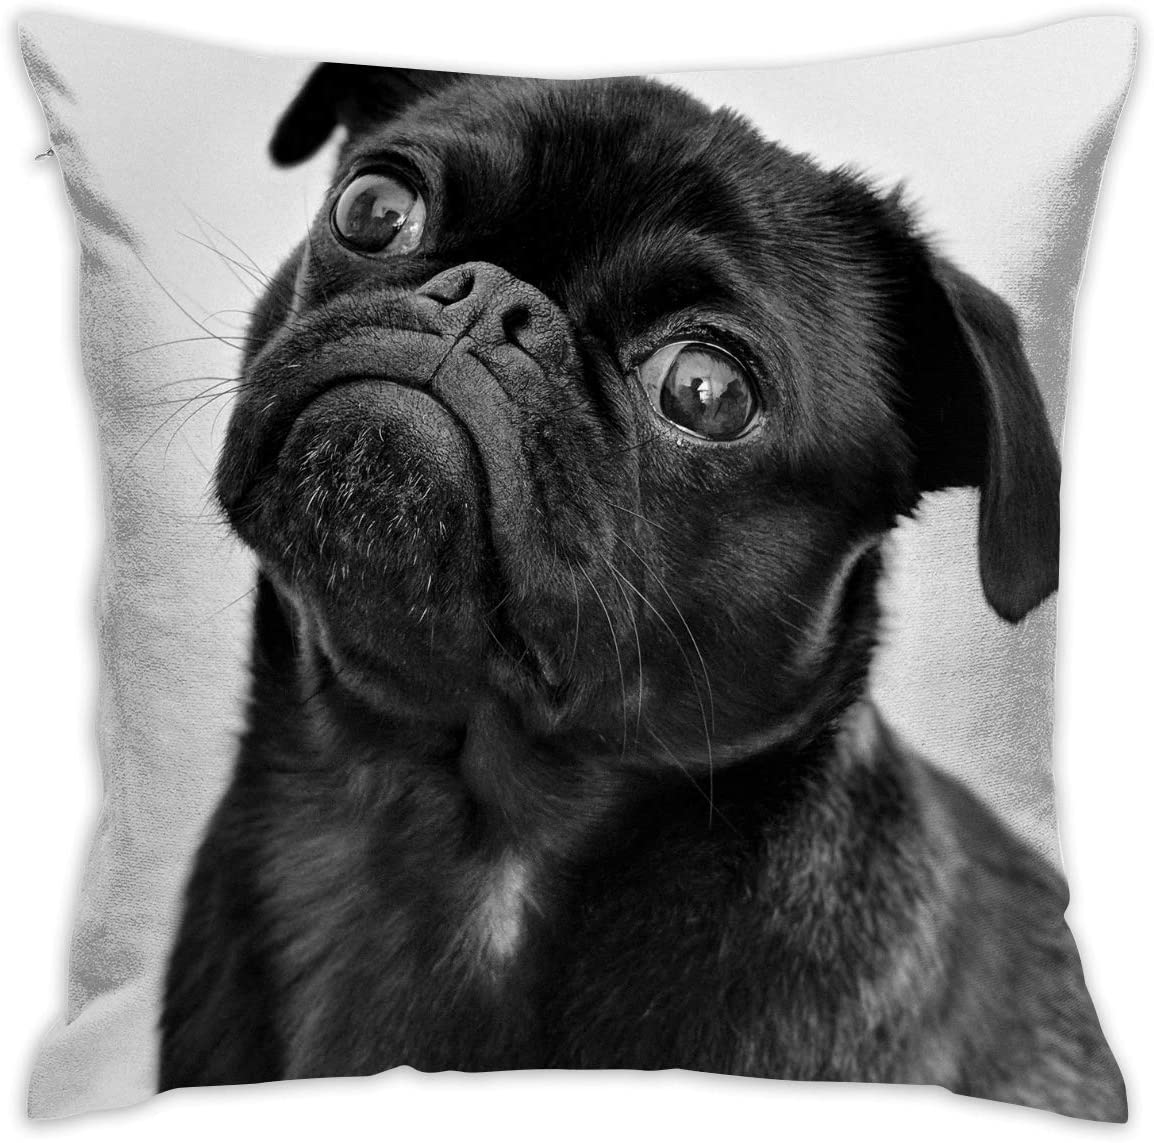 Amazon Com Cute Black Pug Dog Decorative Throw Pillow Cover Square Cushion Case For Home Sofa Bedroom Car Chair House Party Indoor Outdoor 18 X 18 Inch 45 X 45 Cm Home Kitchen